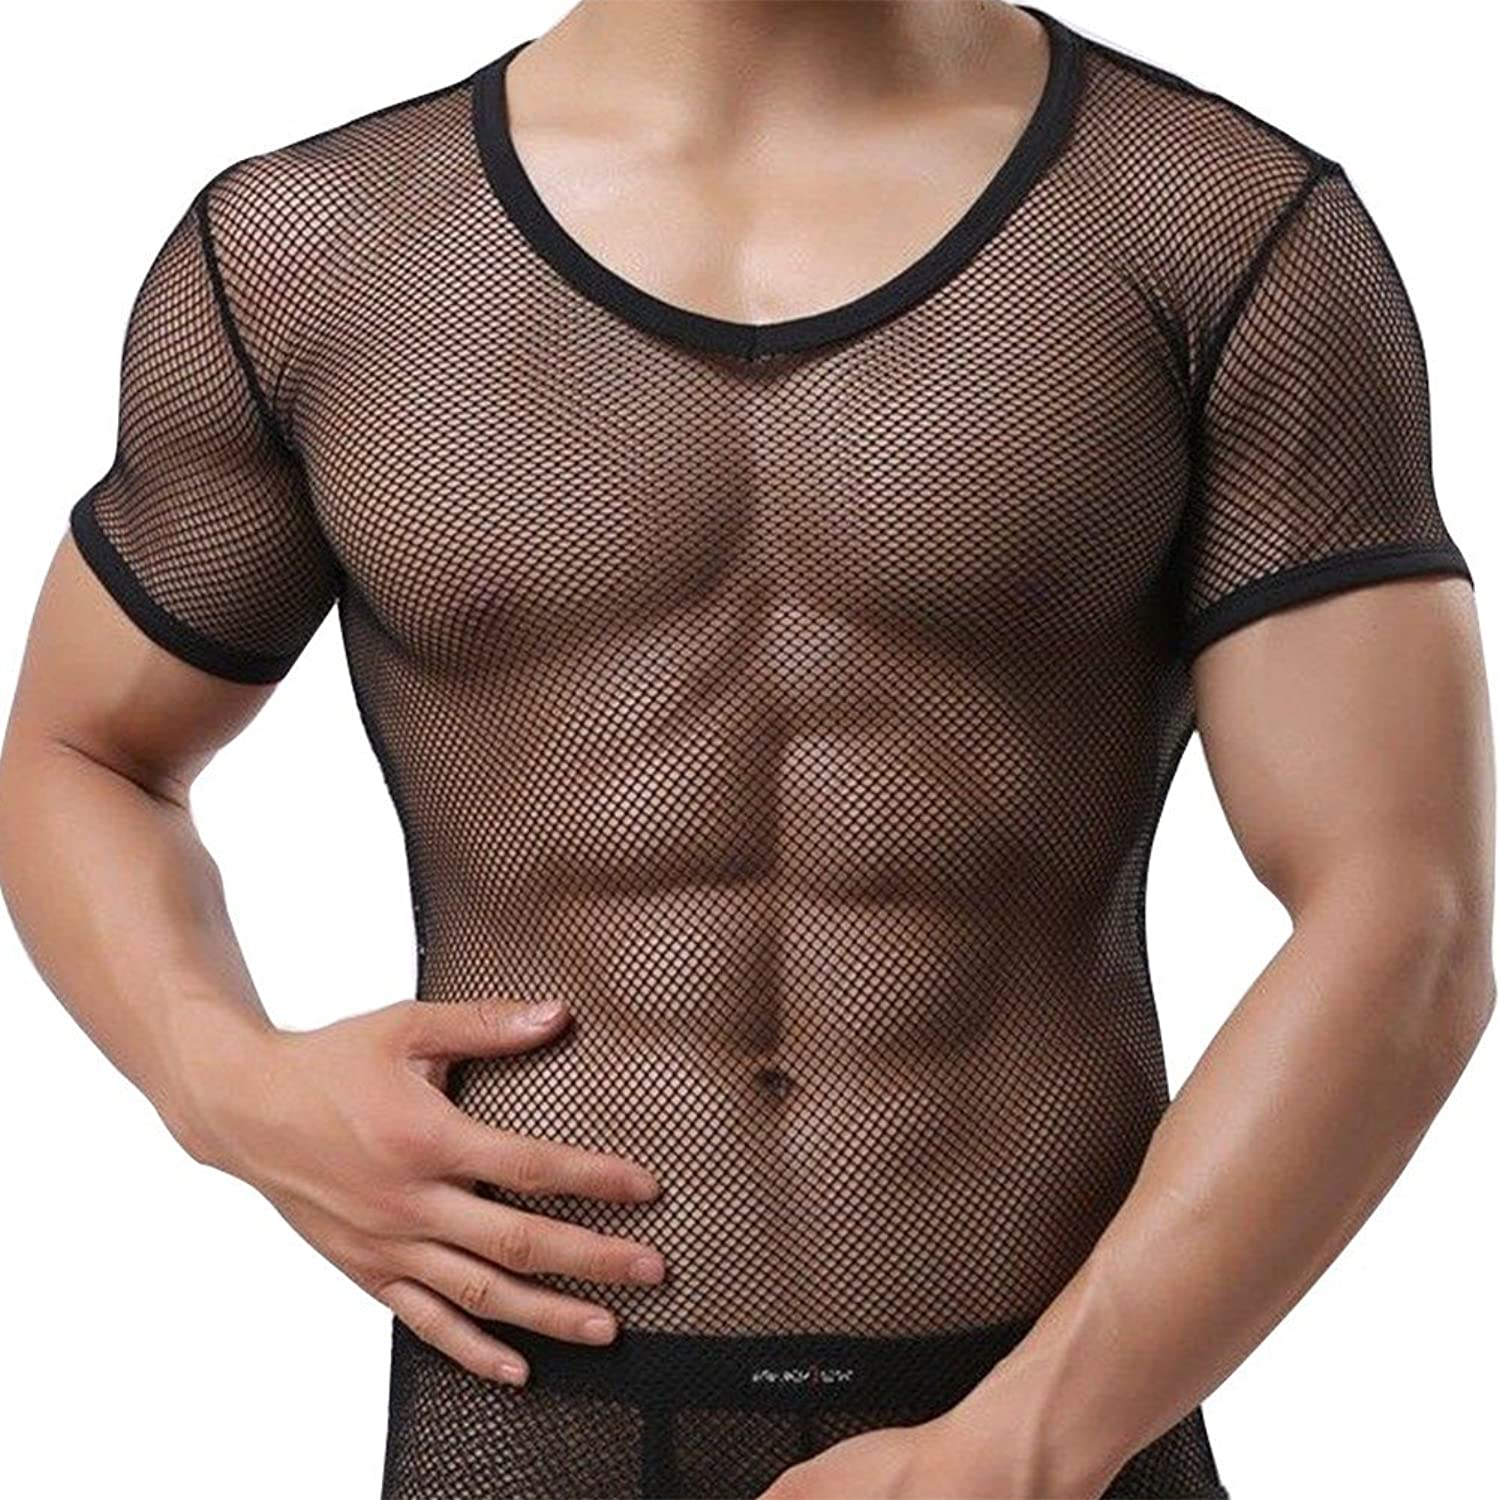 1960s Men's Clothing, 70s Men's Fashion Freebily Mens Sheer Mesh See Through Fishnet Clubwear Vest Shirt Sport Tank Top Undershirt $12.49 AT vintagedancer.com